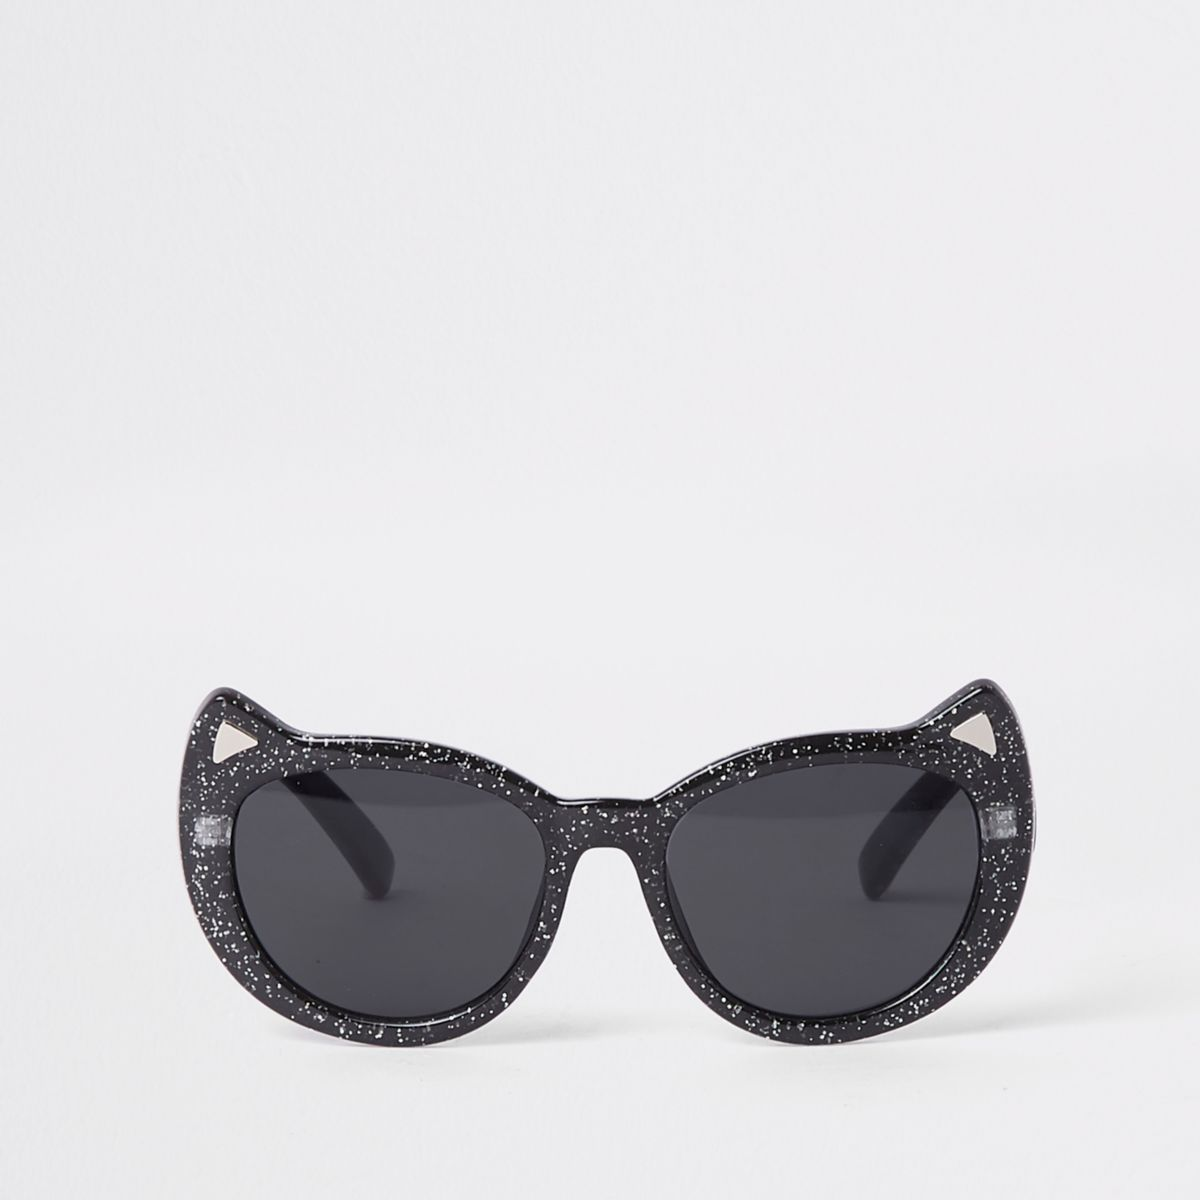 Girls black glitter cat eye sunglasses